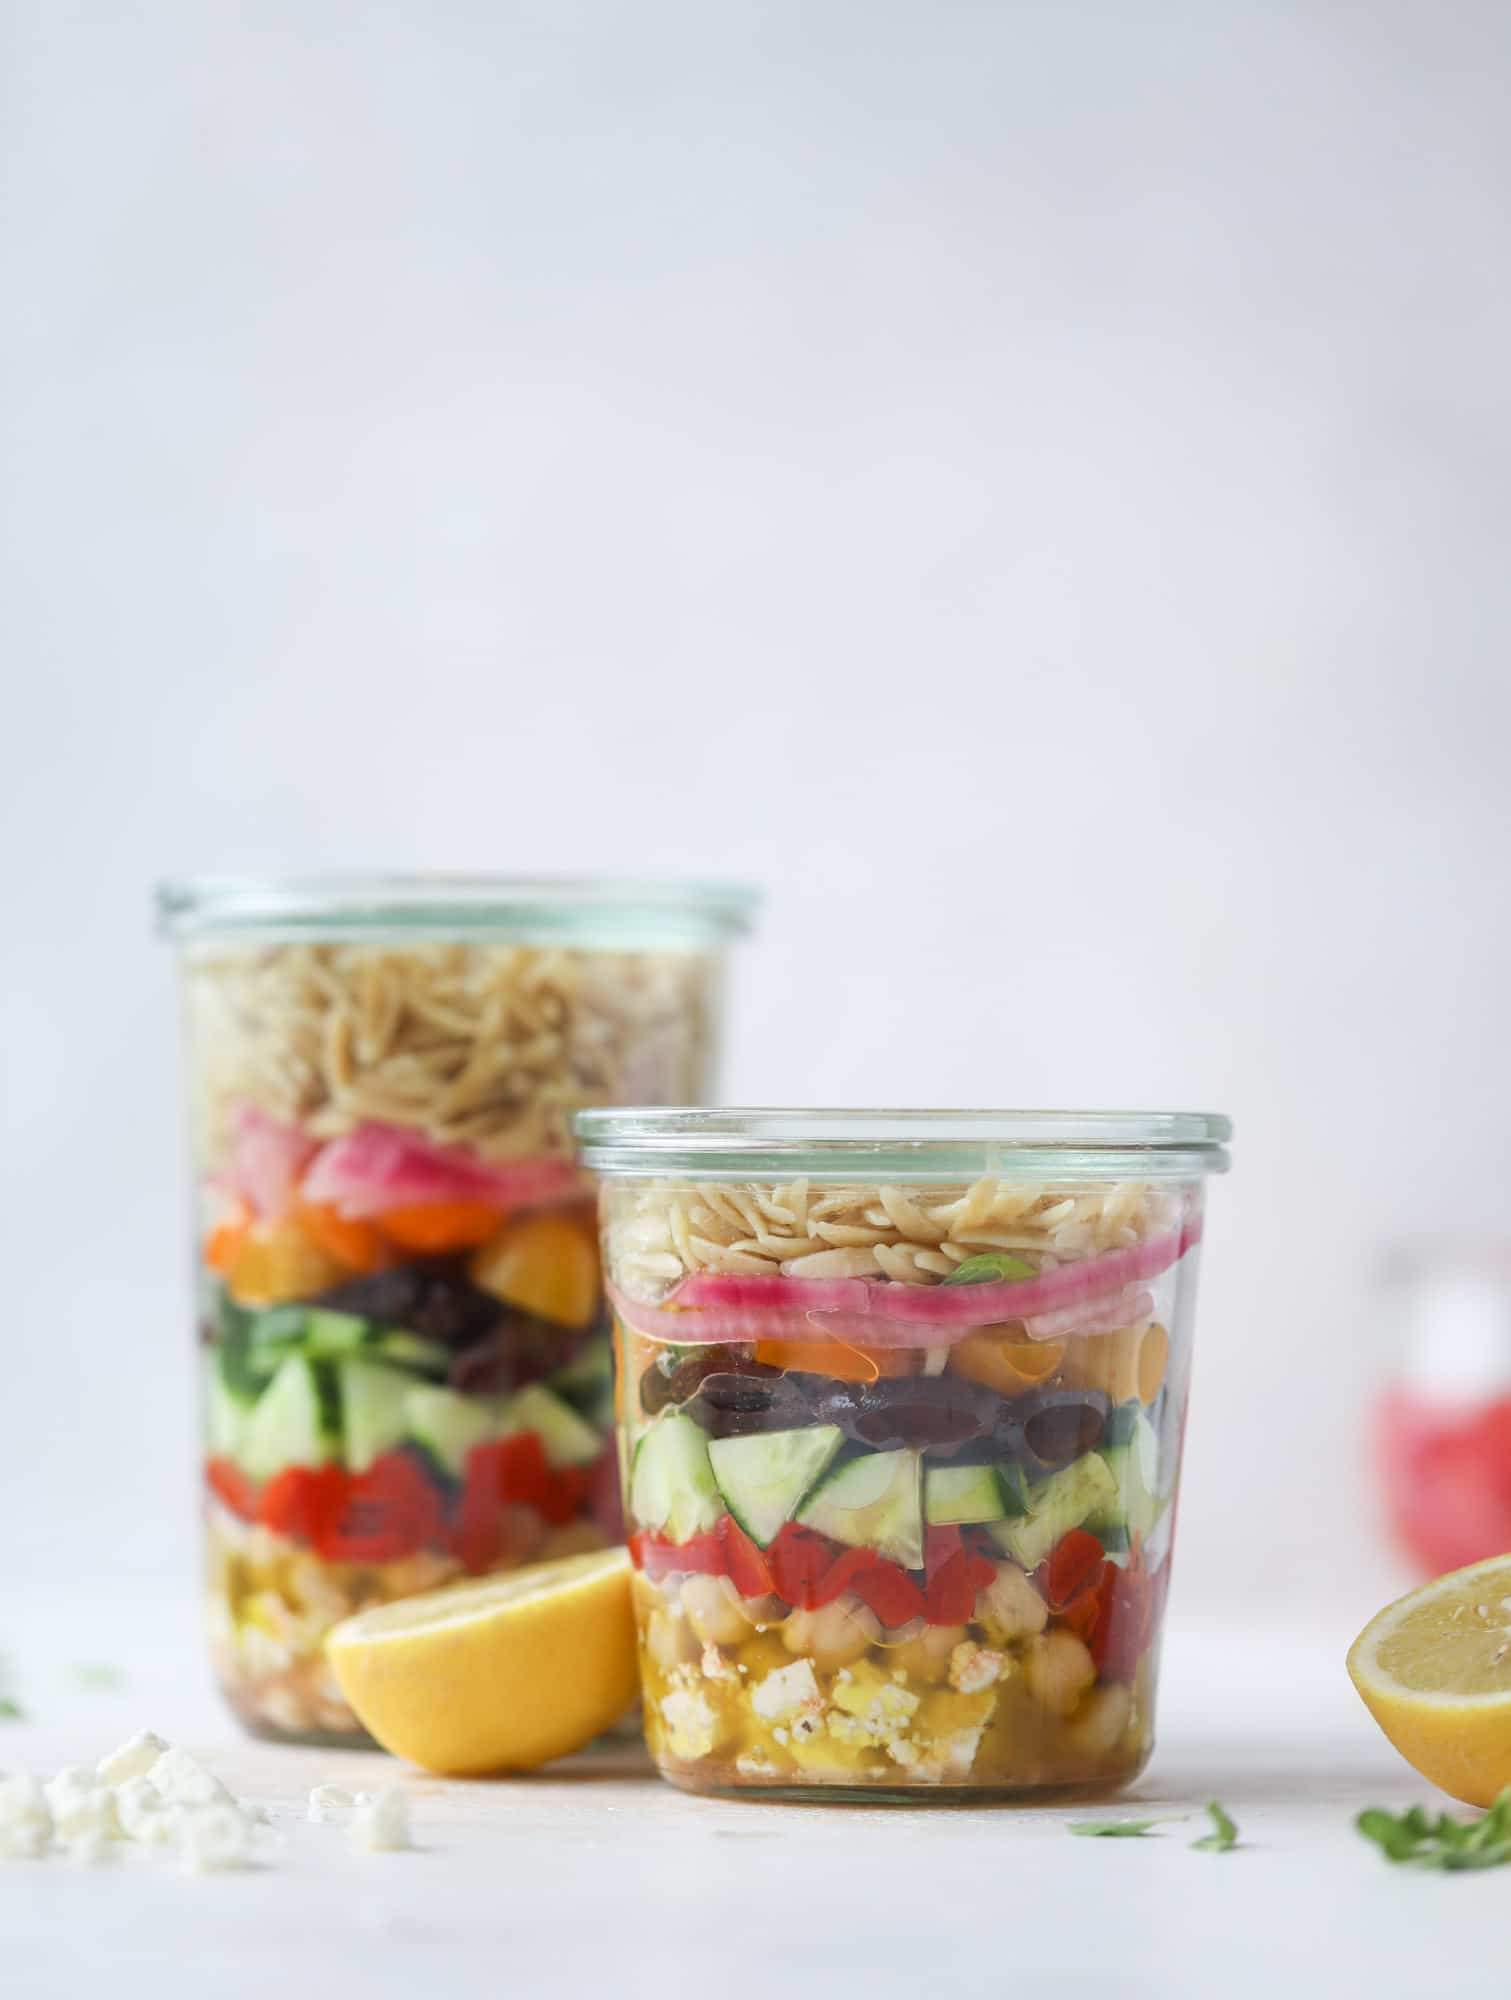 This incredible Greek Orzo salad in a glass is just heavenly! The recipe is so simple and tasty, super satisfying and perfect for preparing meals. This salad in a glass is a delicious lunch idea for the weekdays and keeps you full and happy! I howsweeteats.com #salad #jar #greek #orzo #recipes #healthy #lunch #mealprep